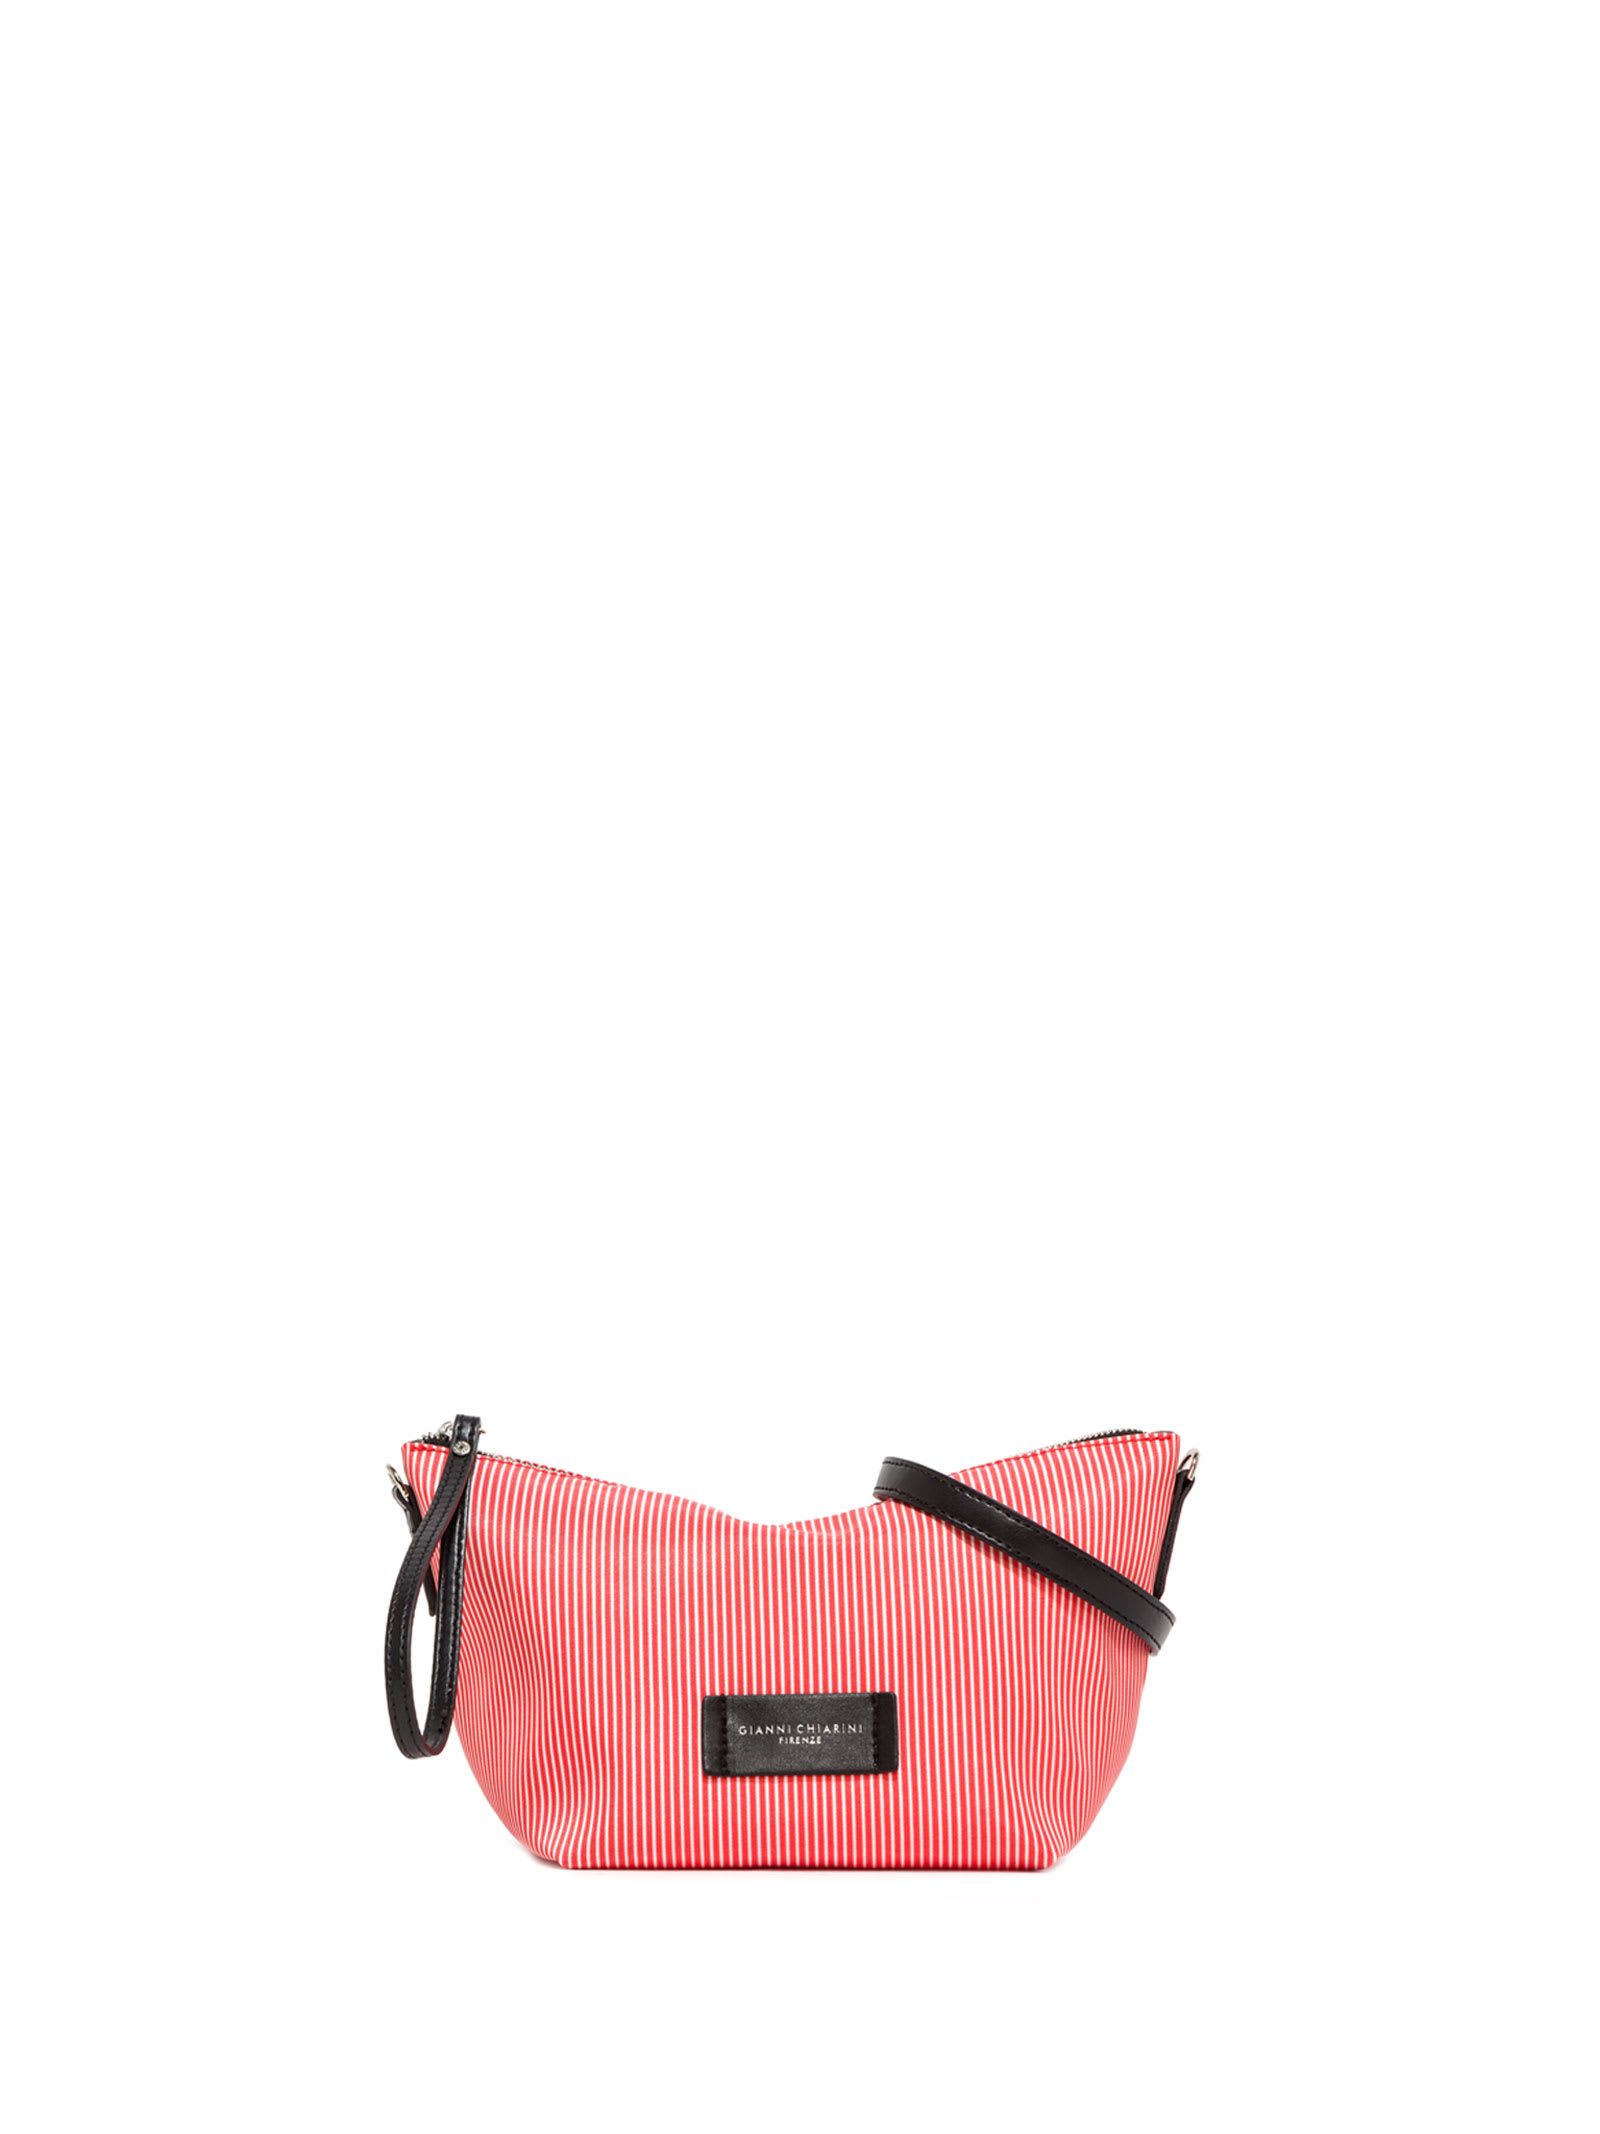 Flame-colored Pouch